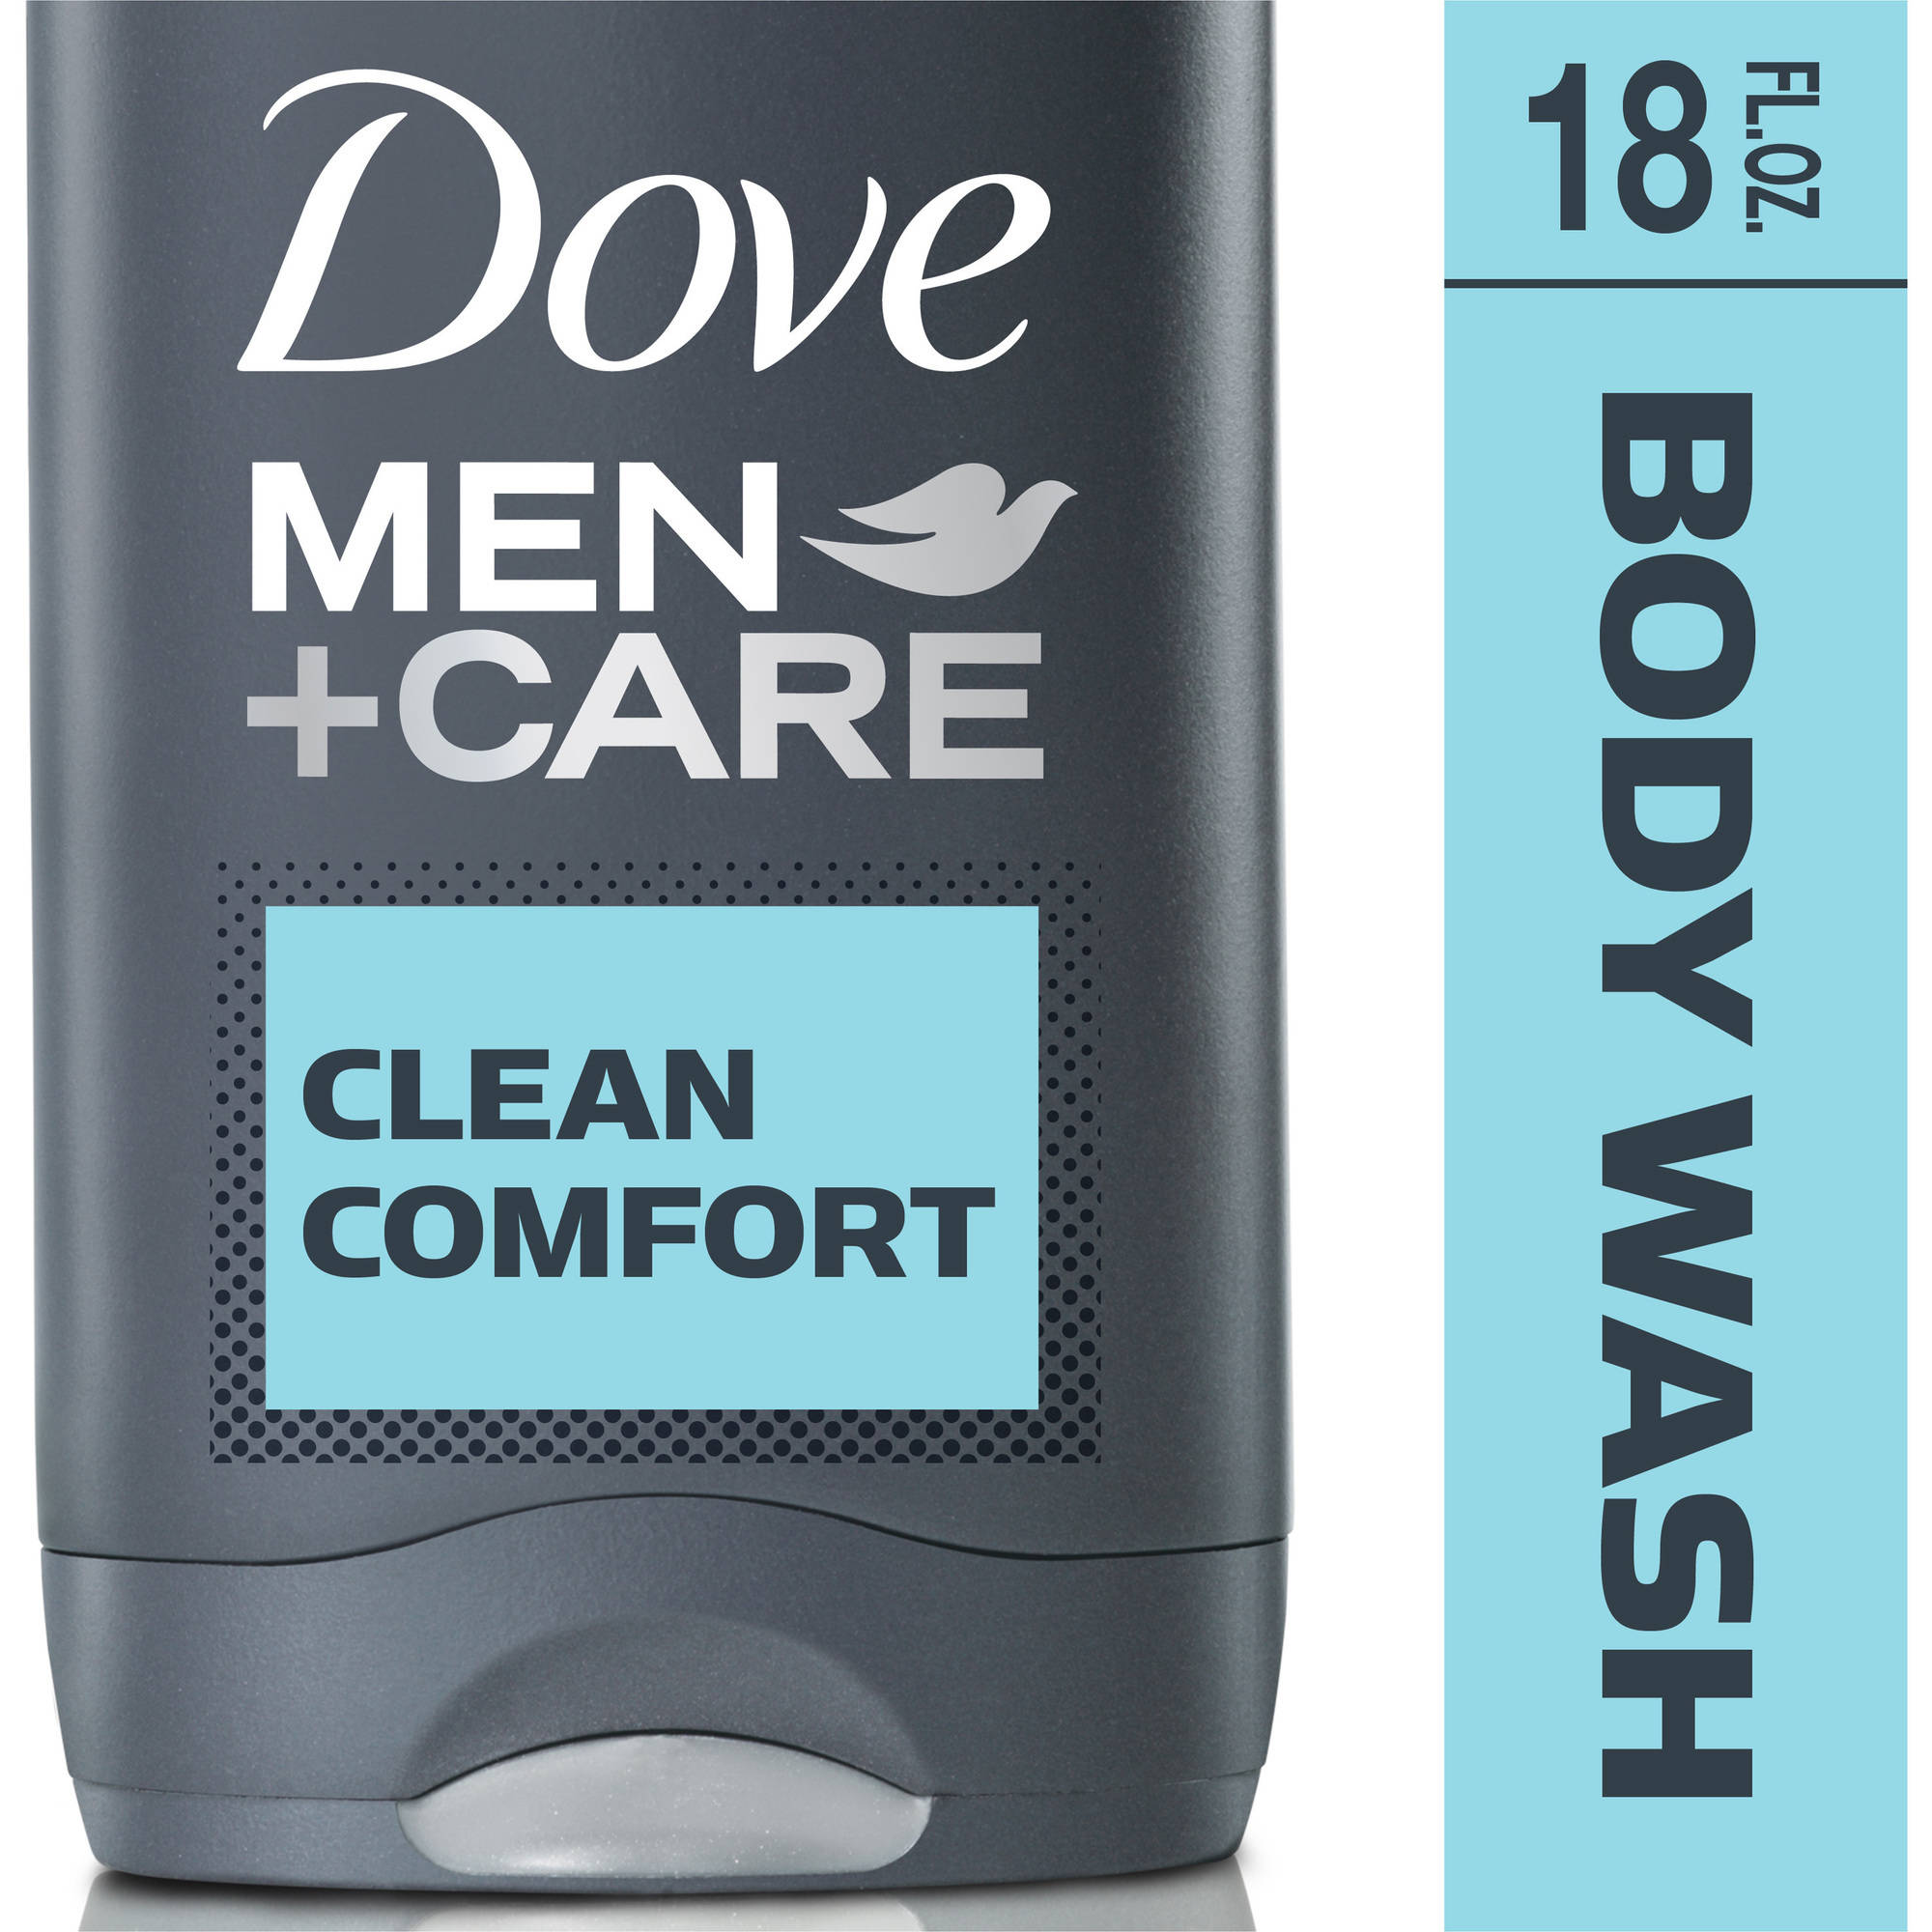 Dove Men+Care Body and Face Wash Clean Comfort 18 oz - Walmart.com